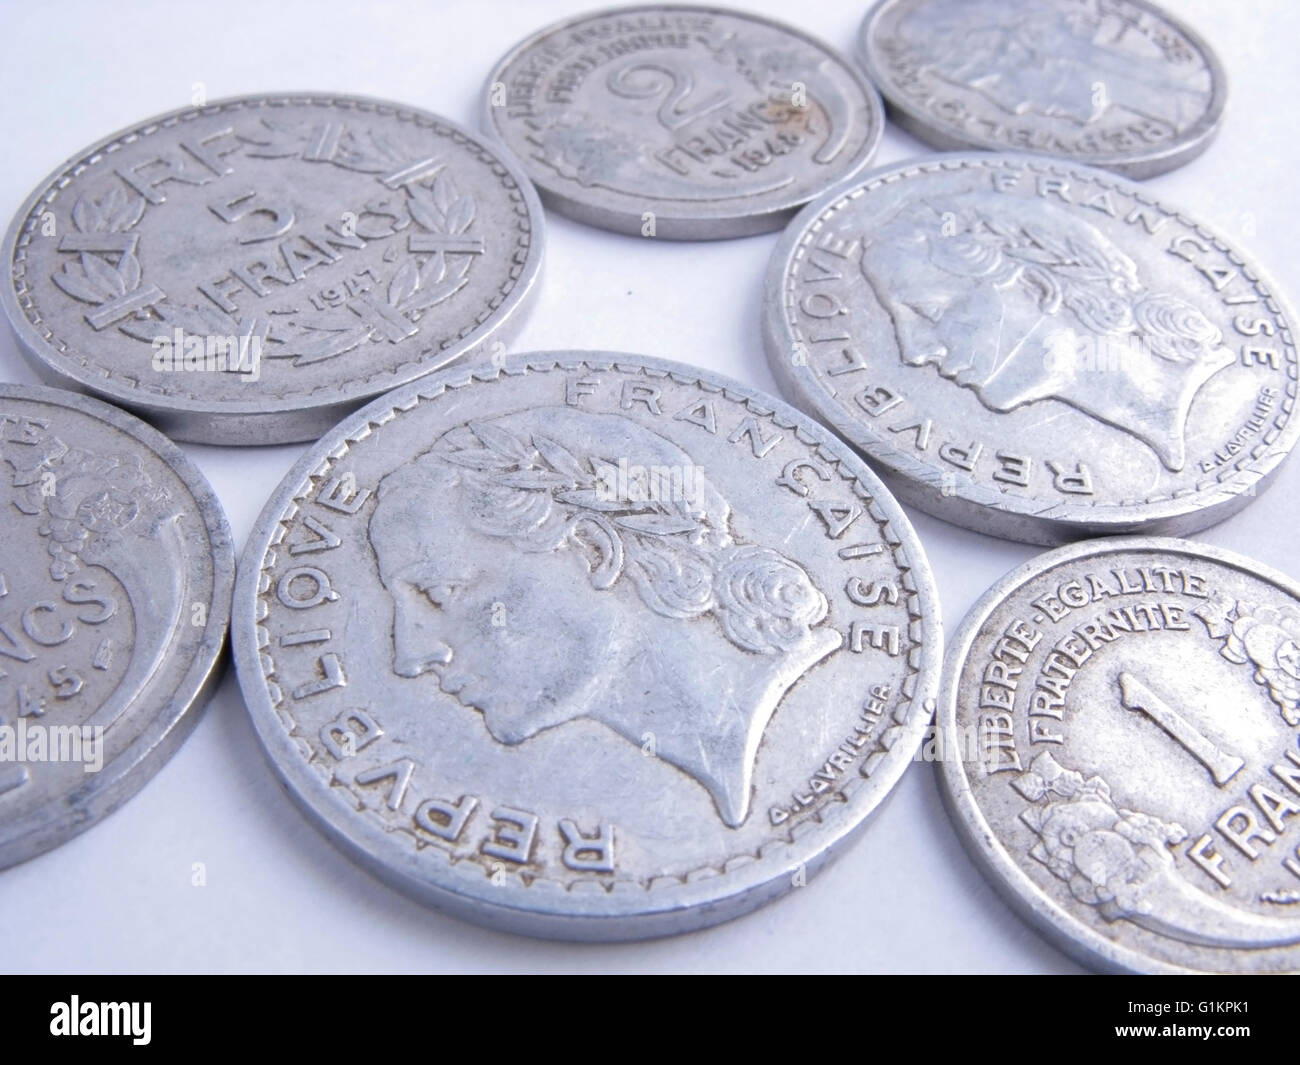 Picture of a bulk lot of old french coins Stock Photo